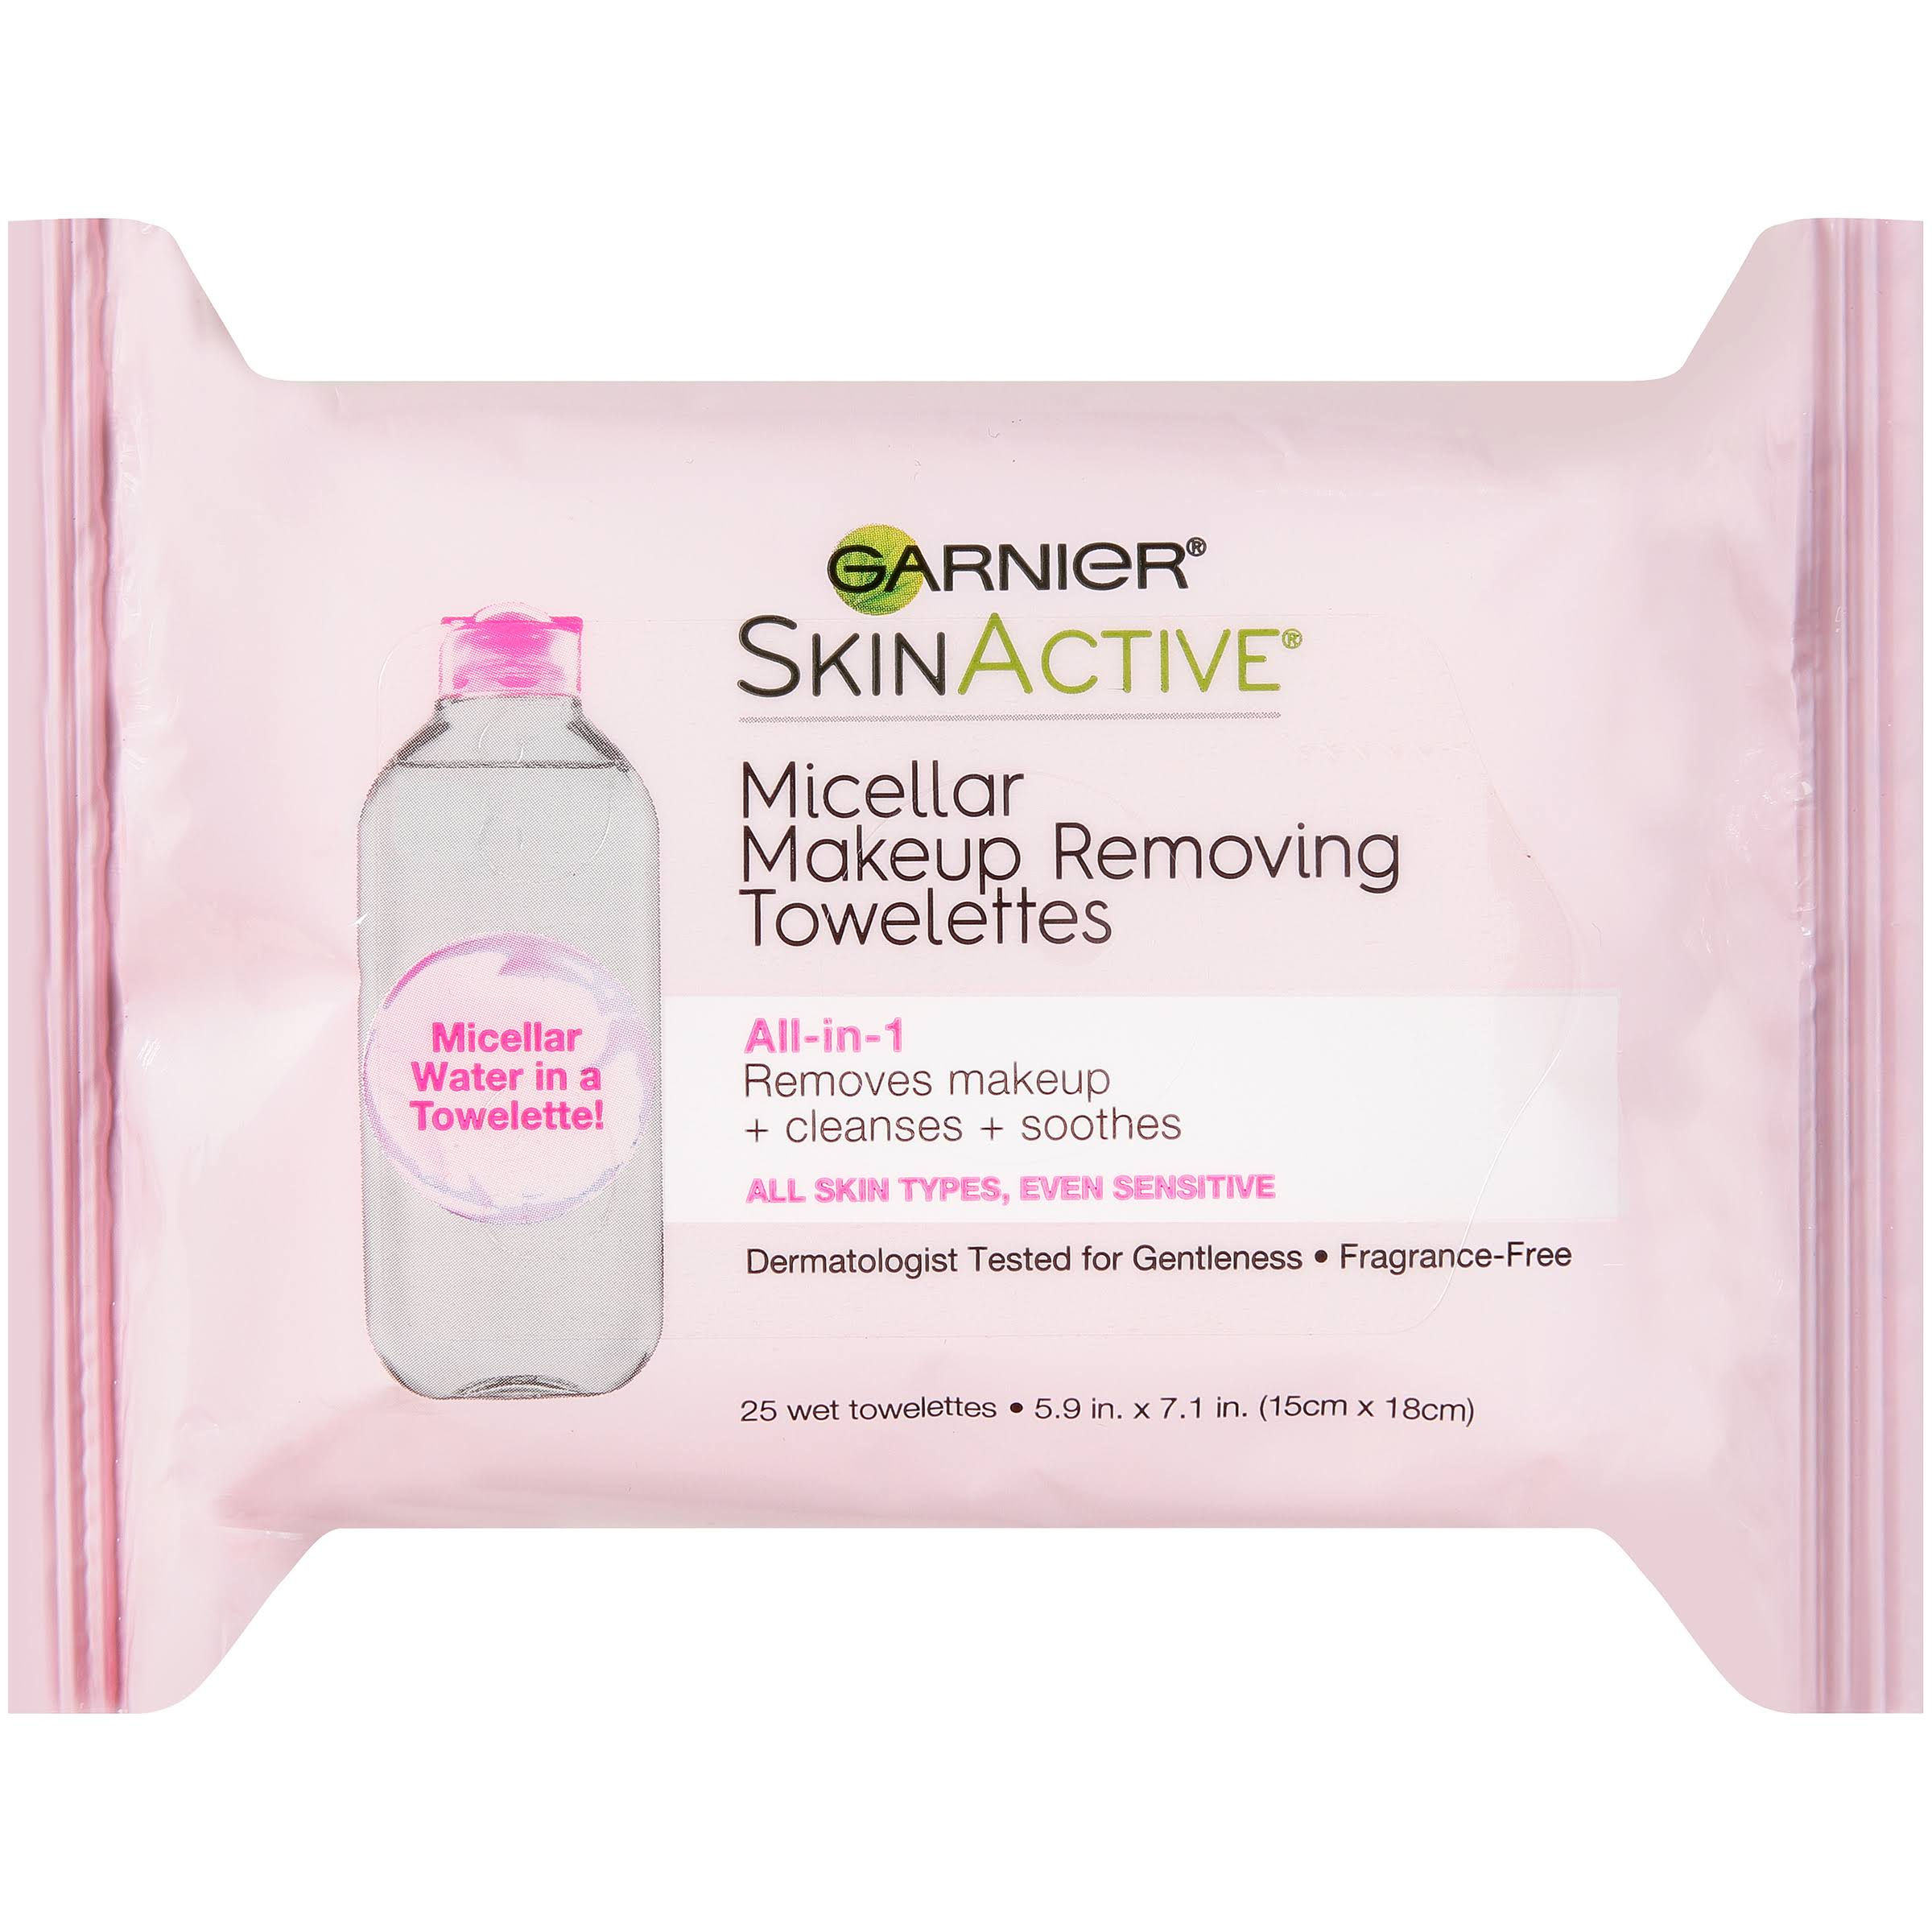 Garnier Skin Active Micellar Makeup Removing Wet Towelettes - 25 Wet Towelettes